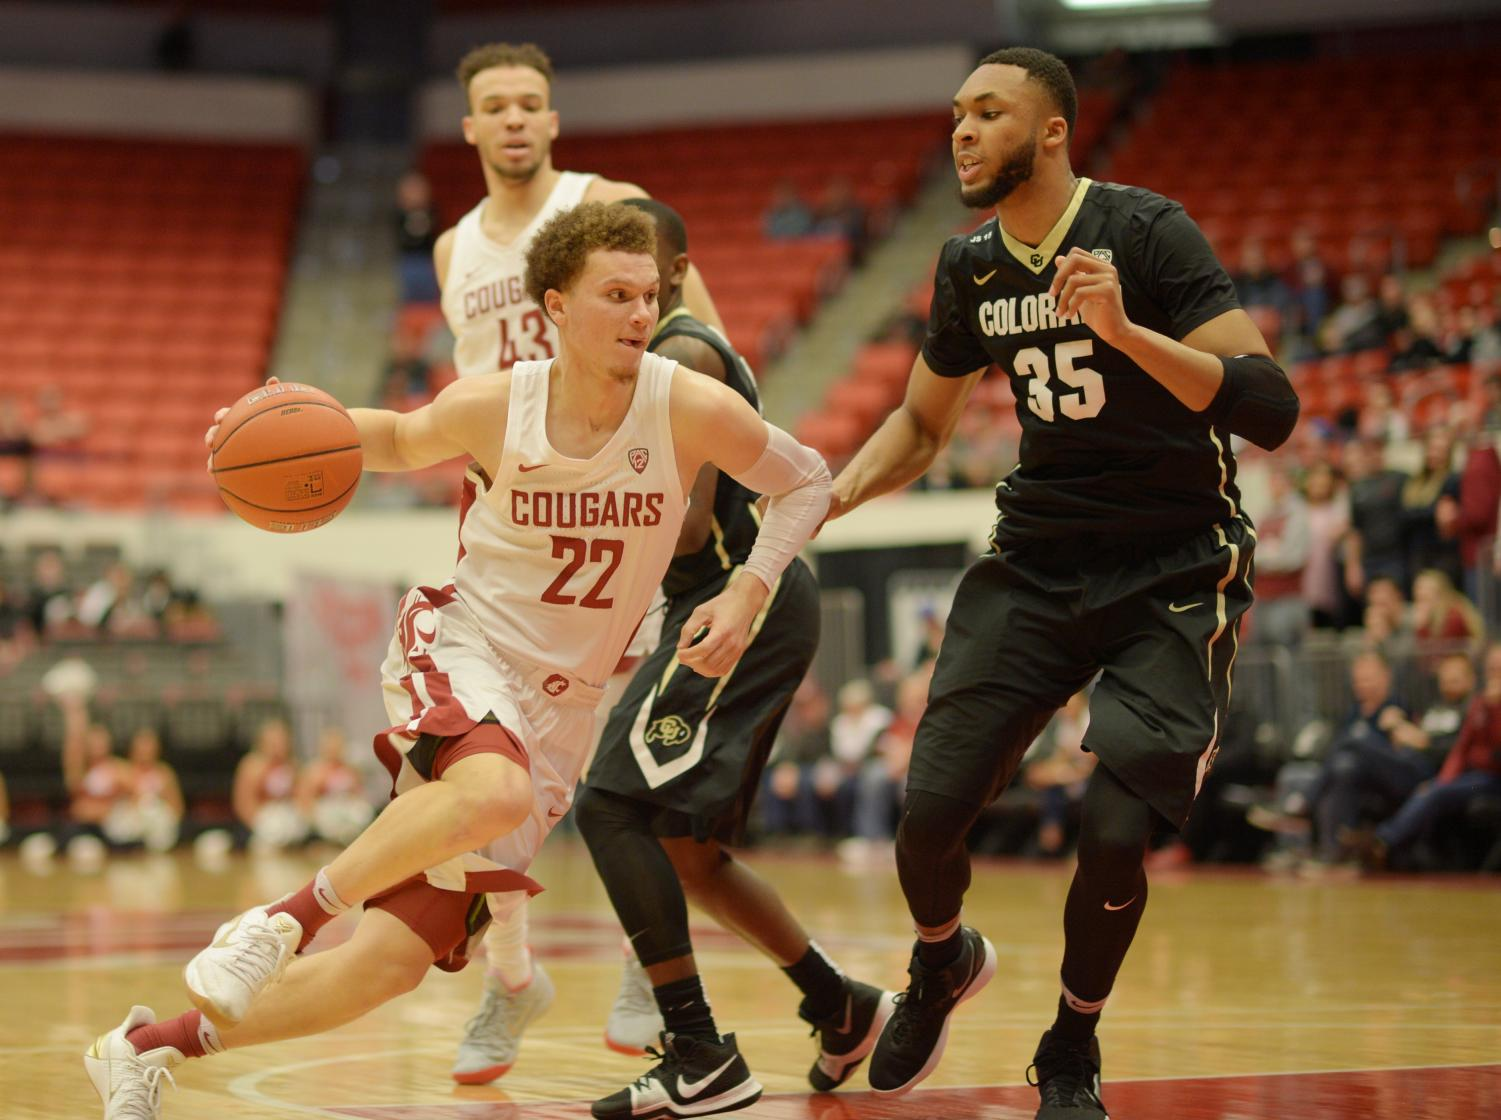 Sophomore guard Malachi Flynn dribbles around Colorado freshman center Dallas Walton in a game  Feb. 15 at Beasley Coliseum. WSU won 73-69 to snap a seven-game losing streak.